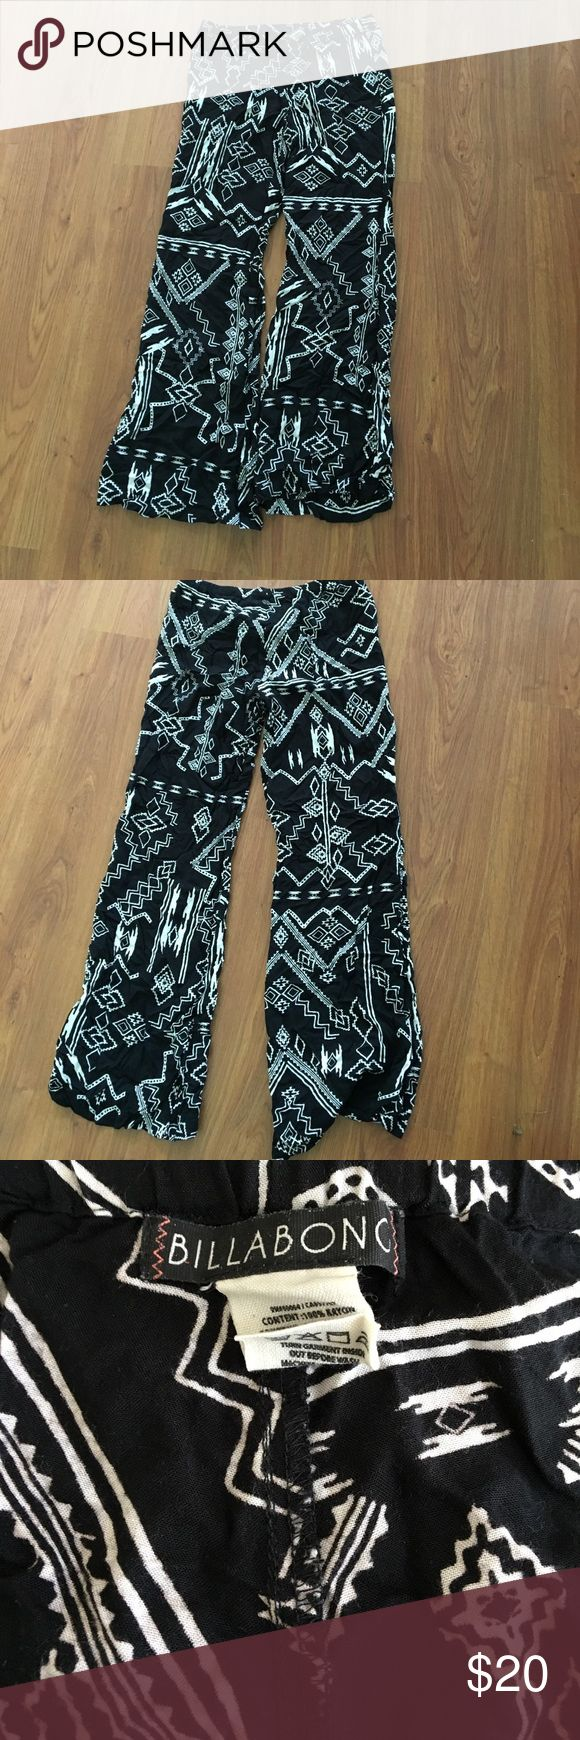 Billabong Beach Pant Black and white Aztec print Billabong pants. 100% Rayon material and very light and flowy. Is a bit tight around waist and thighs. Billabong Pants